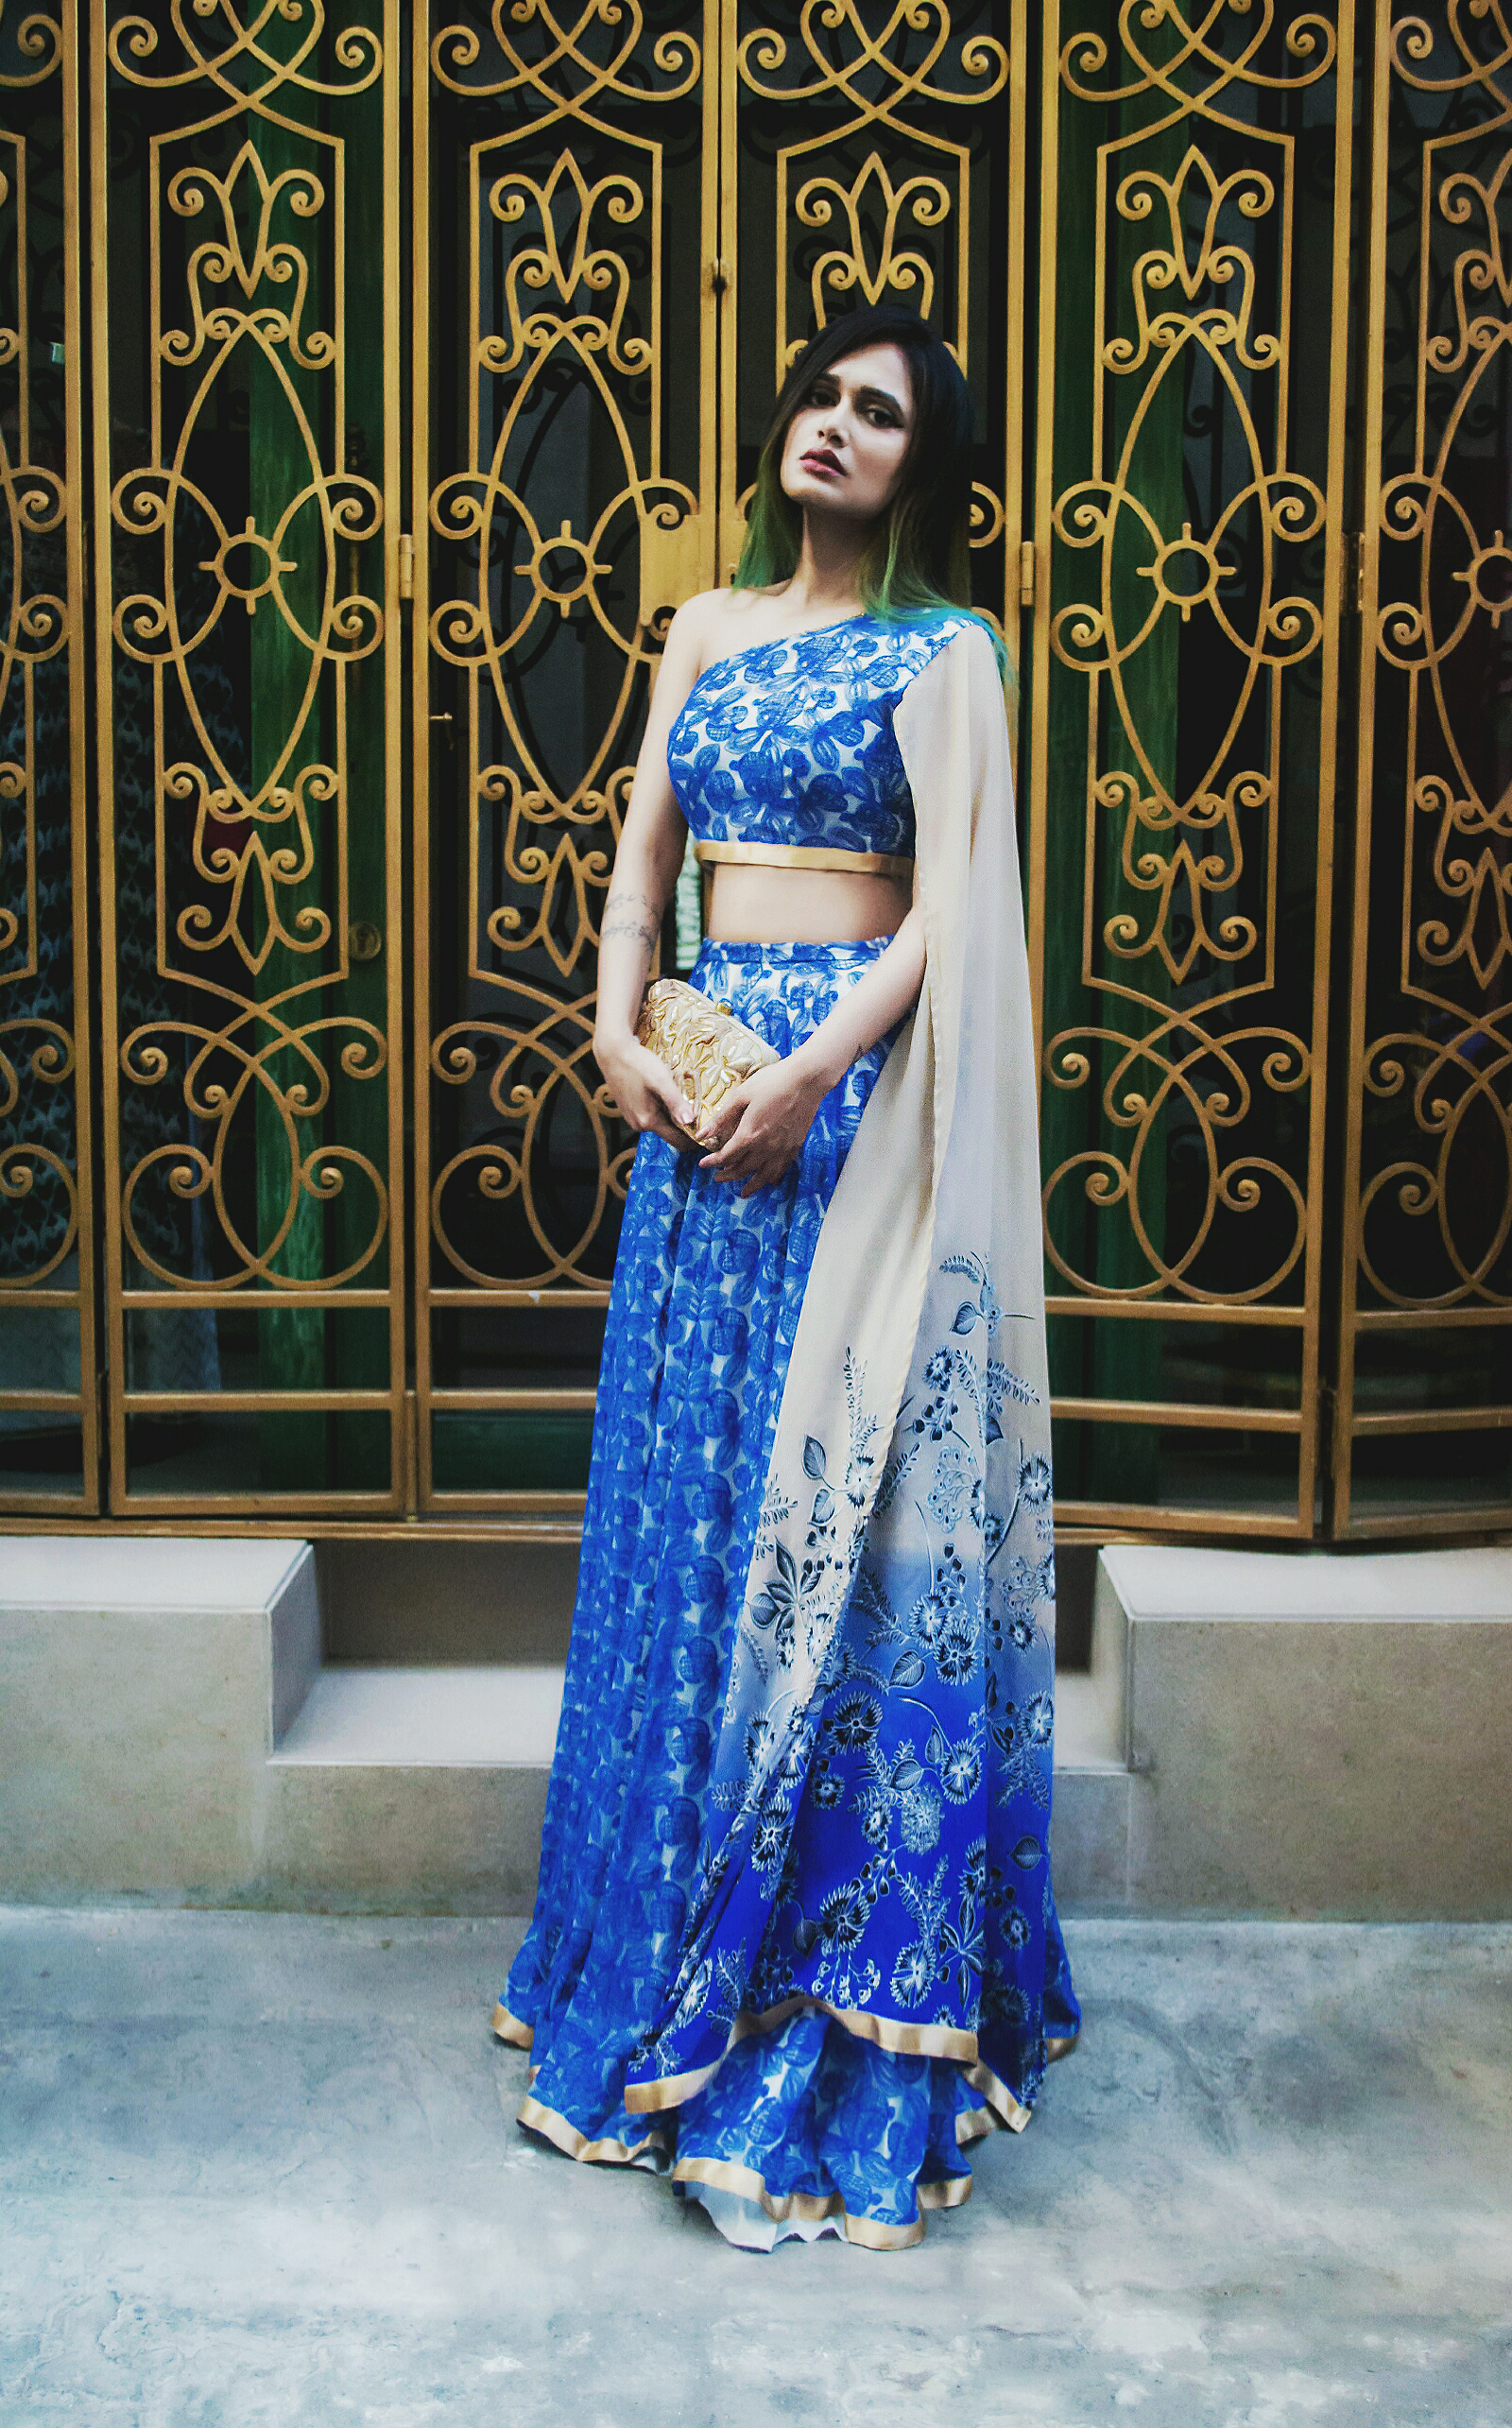 The-Chic-Armoire-by-Nidhi-Kunder-Couture-Mantra-9